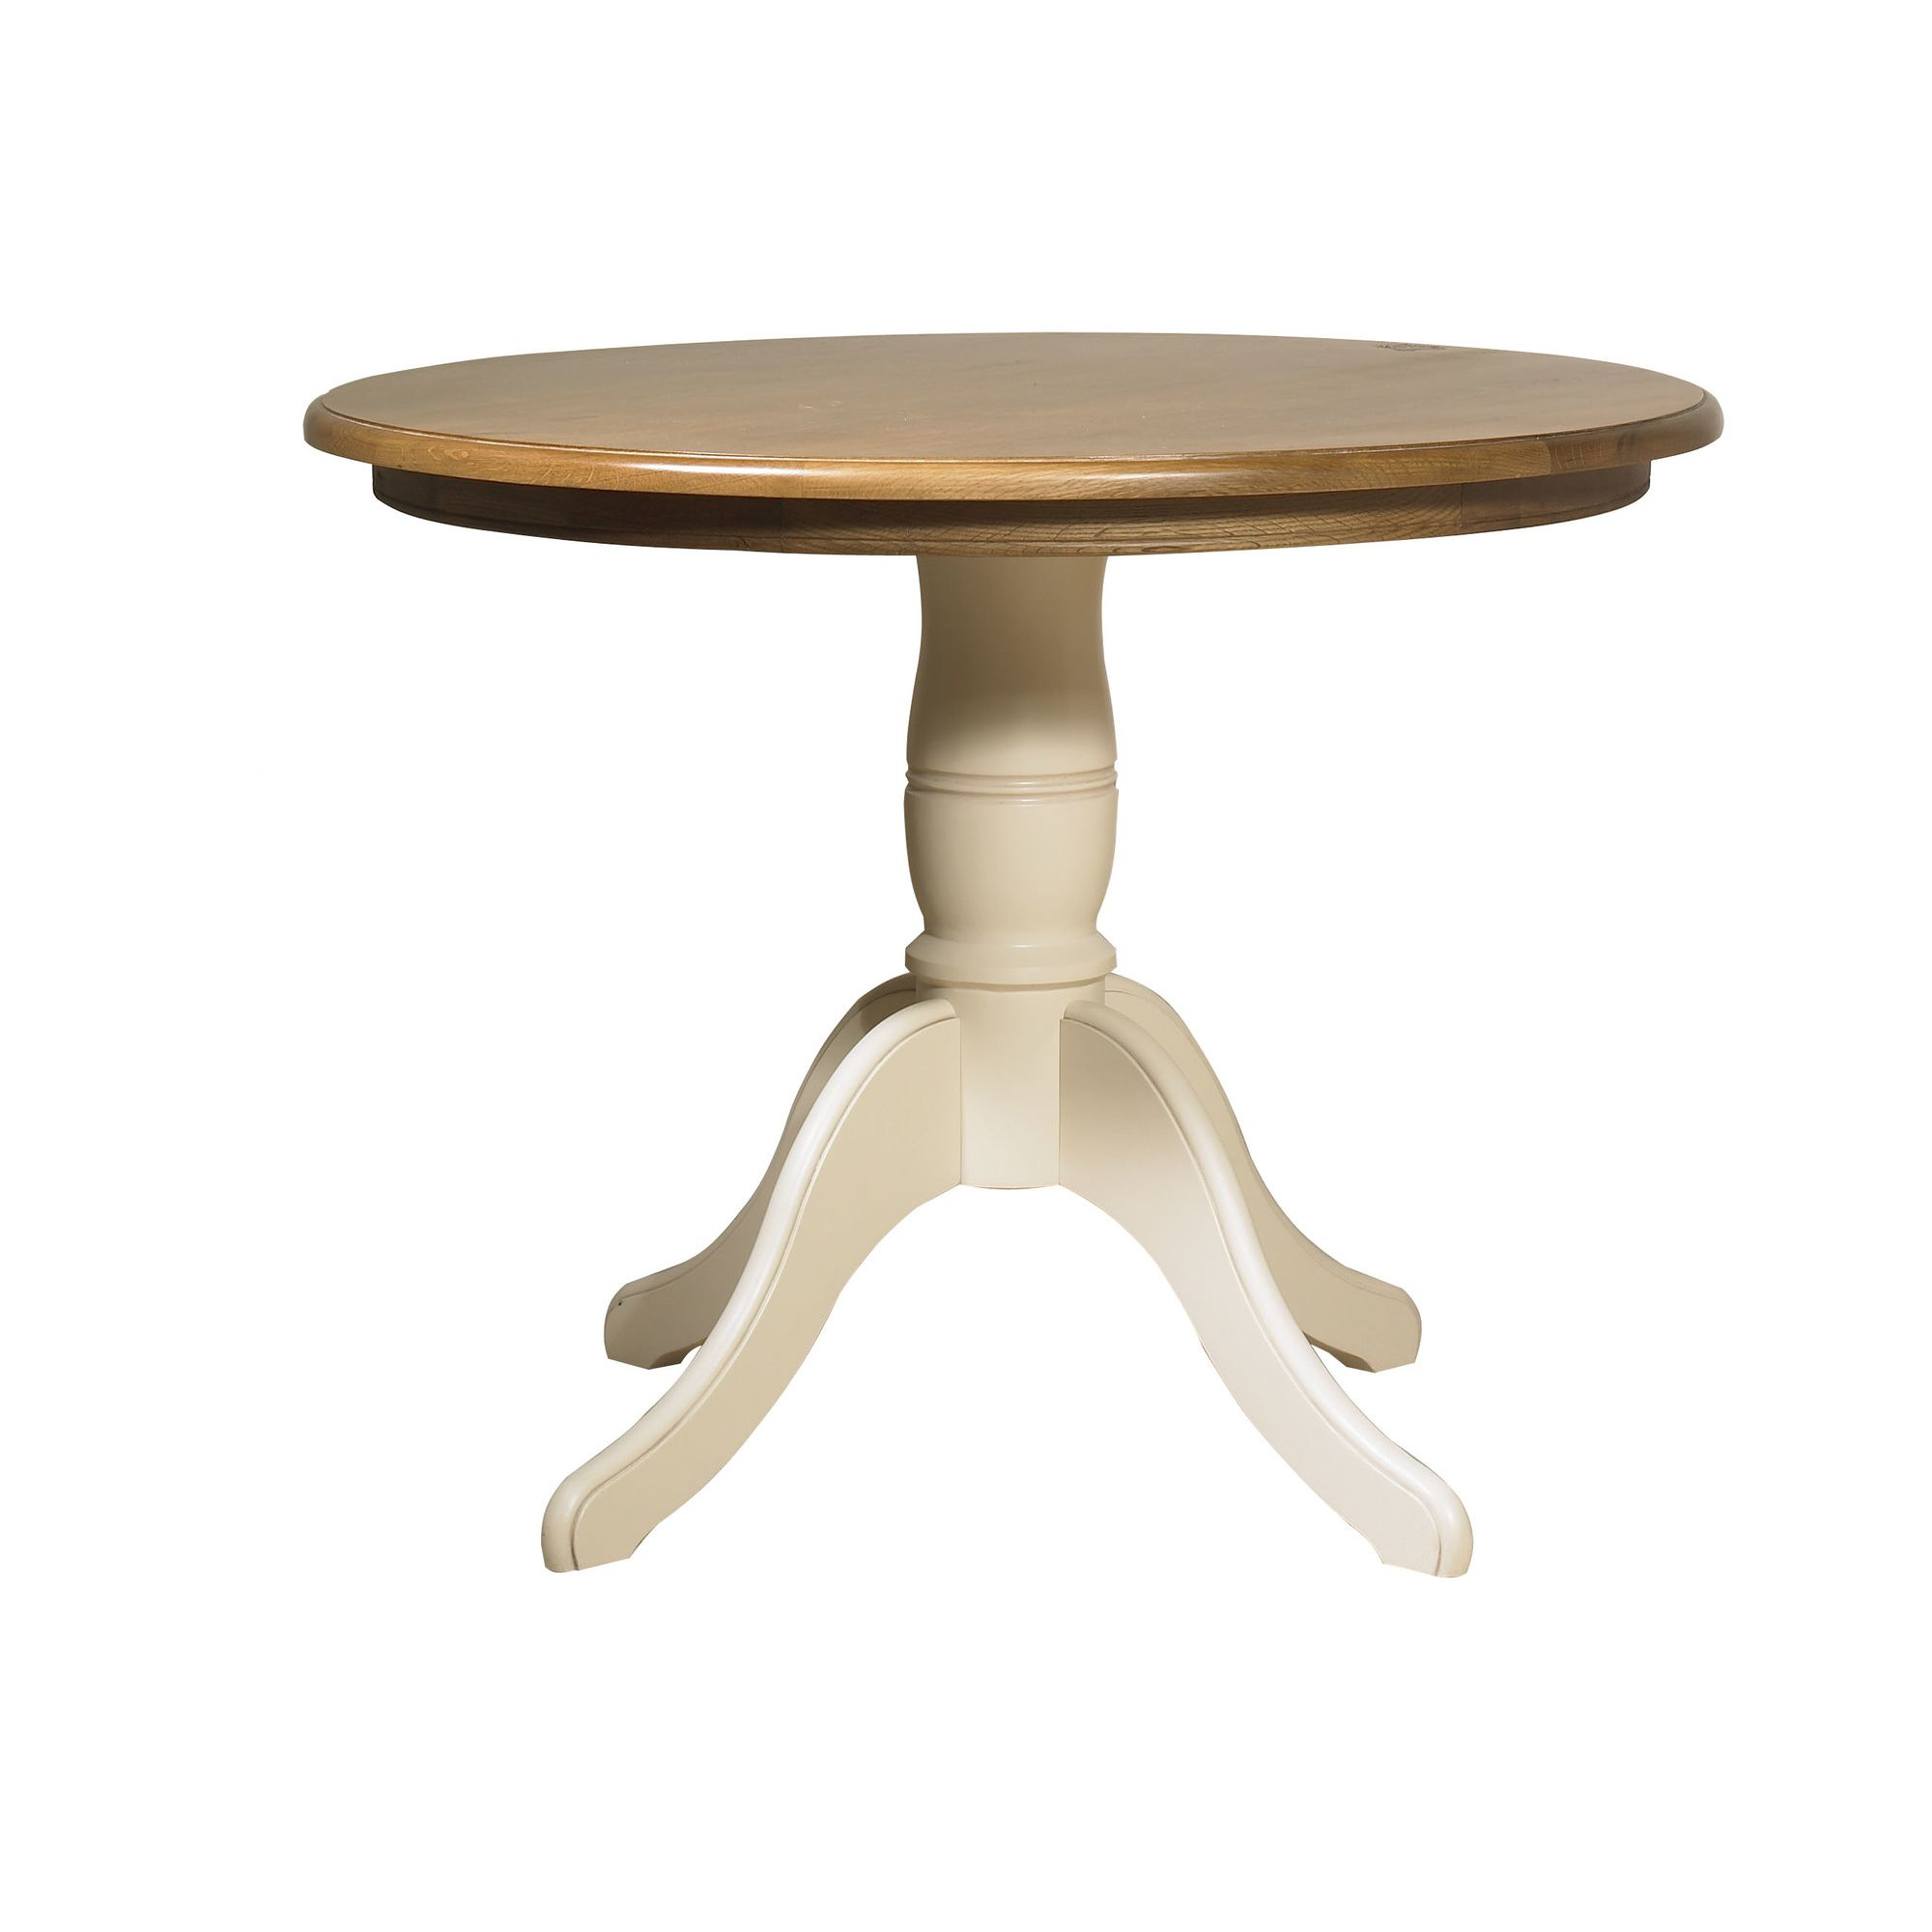 YP Furniture Country House Circular Dining Table - Oak Top and Ivory